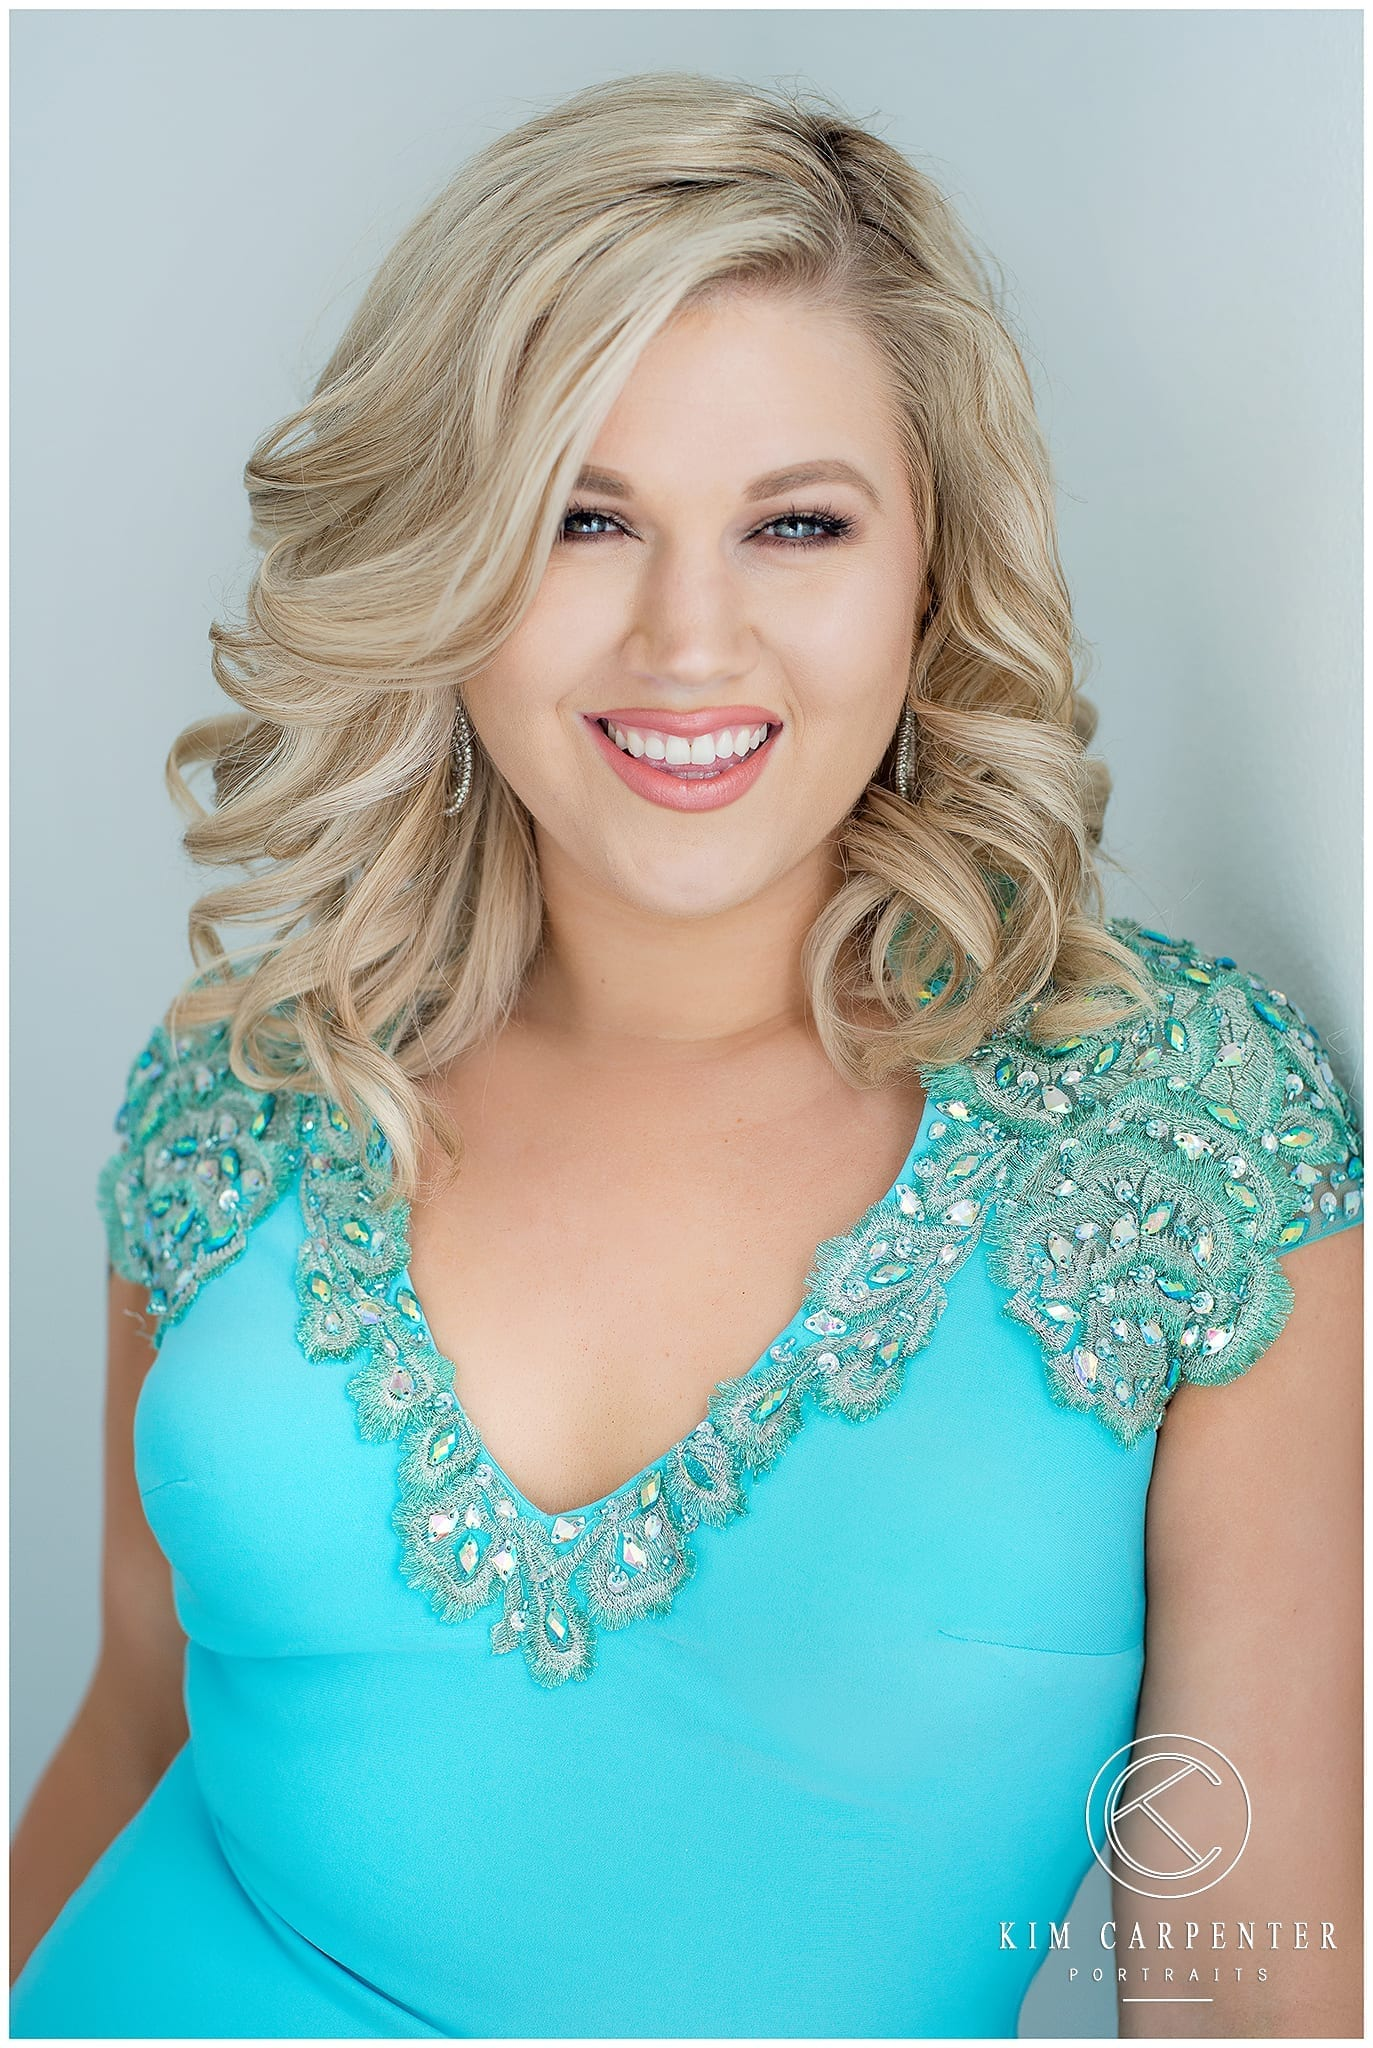 Woman smiling and posing for camera with blonde curls and a blue dress. Lakeland Photographer, professional headshots